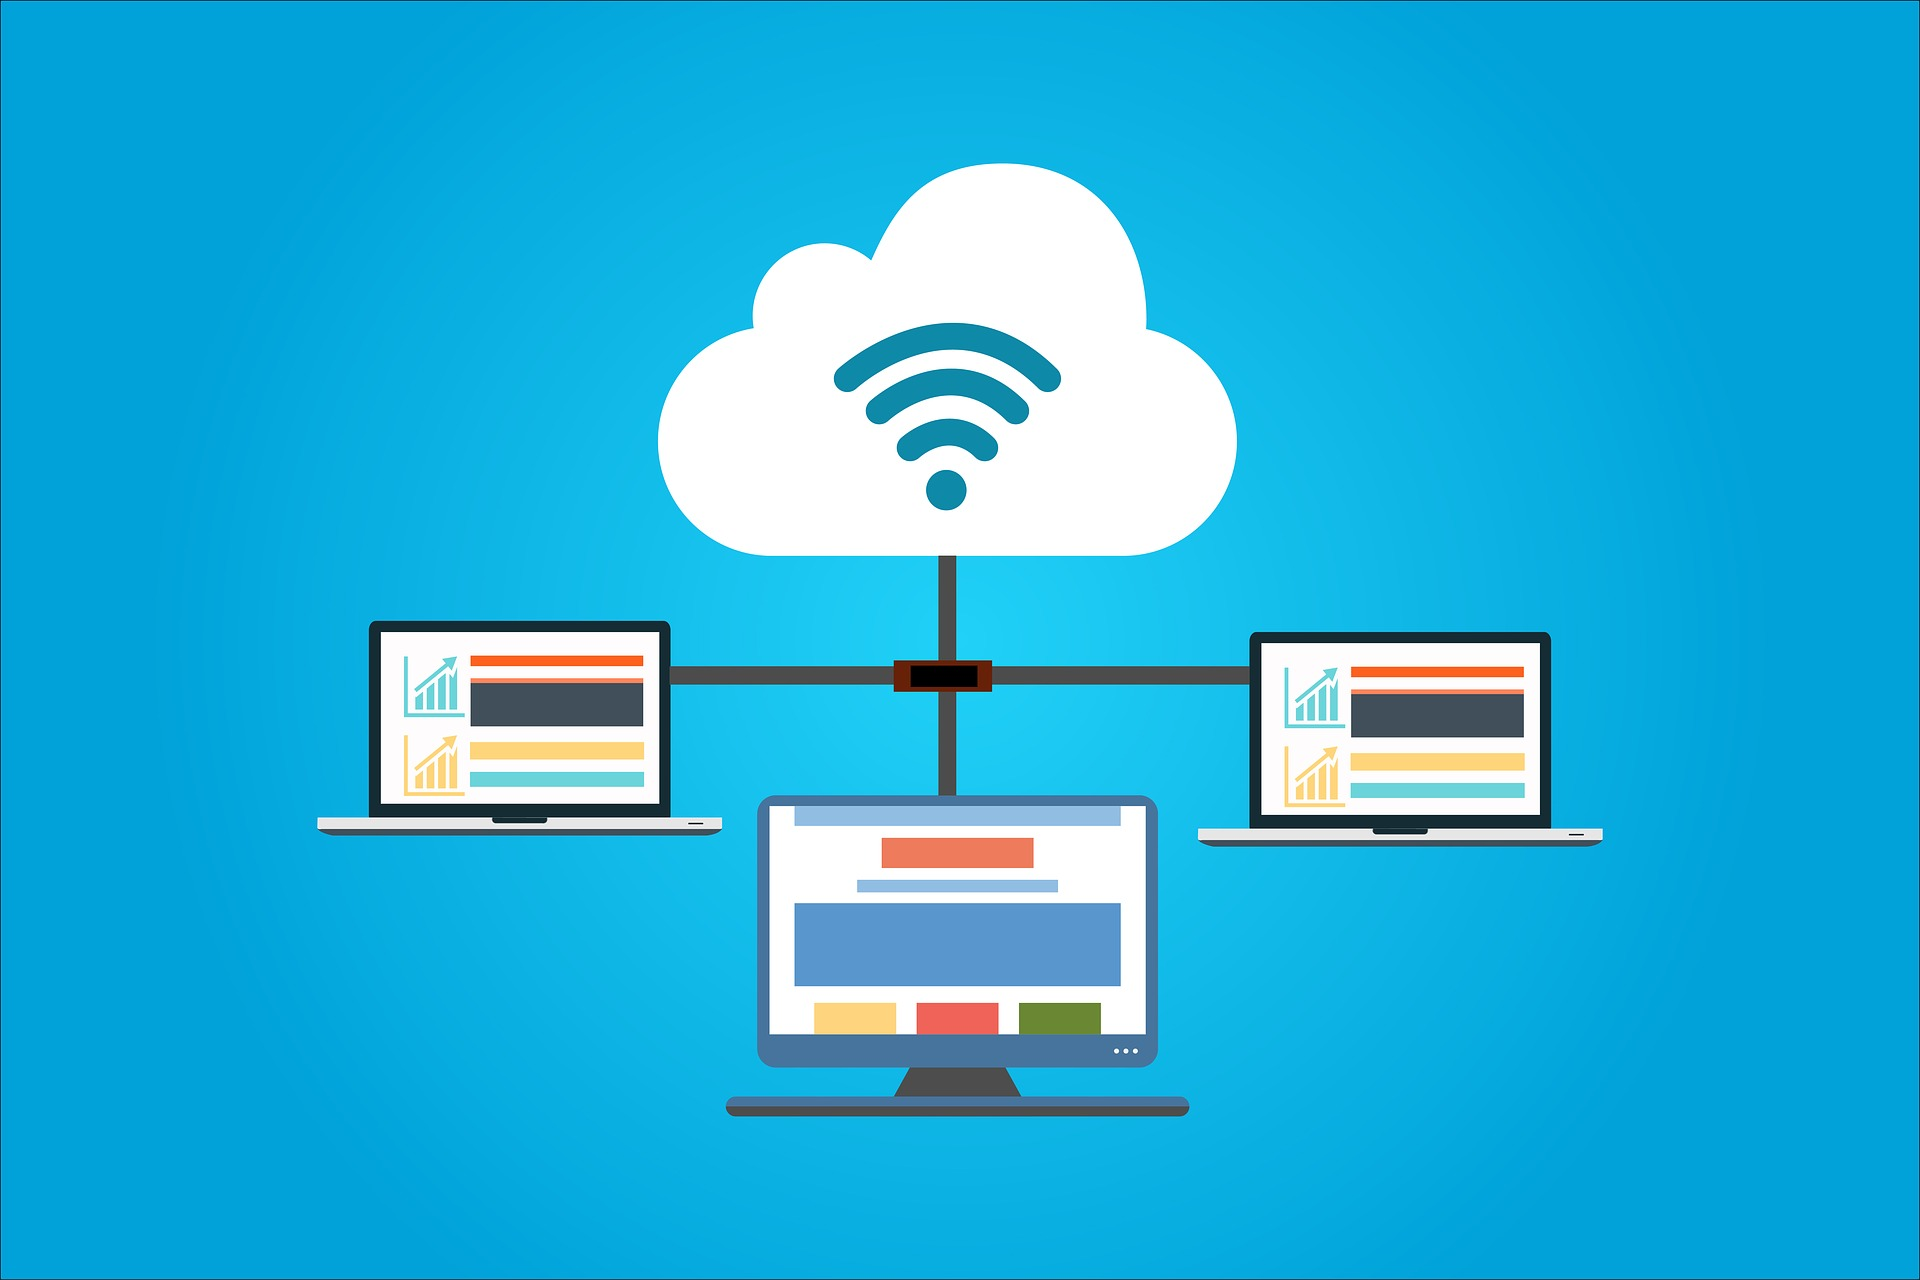 Cloud Concepts - Principles of Cloud Computing